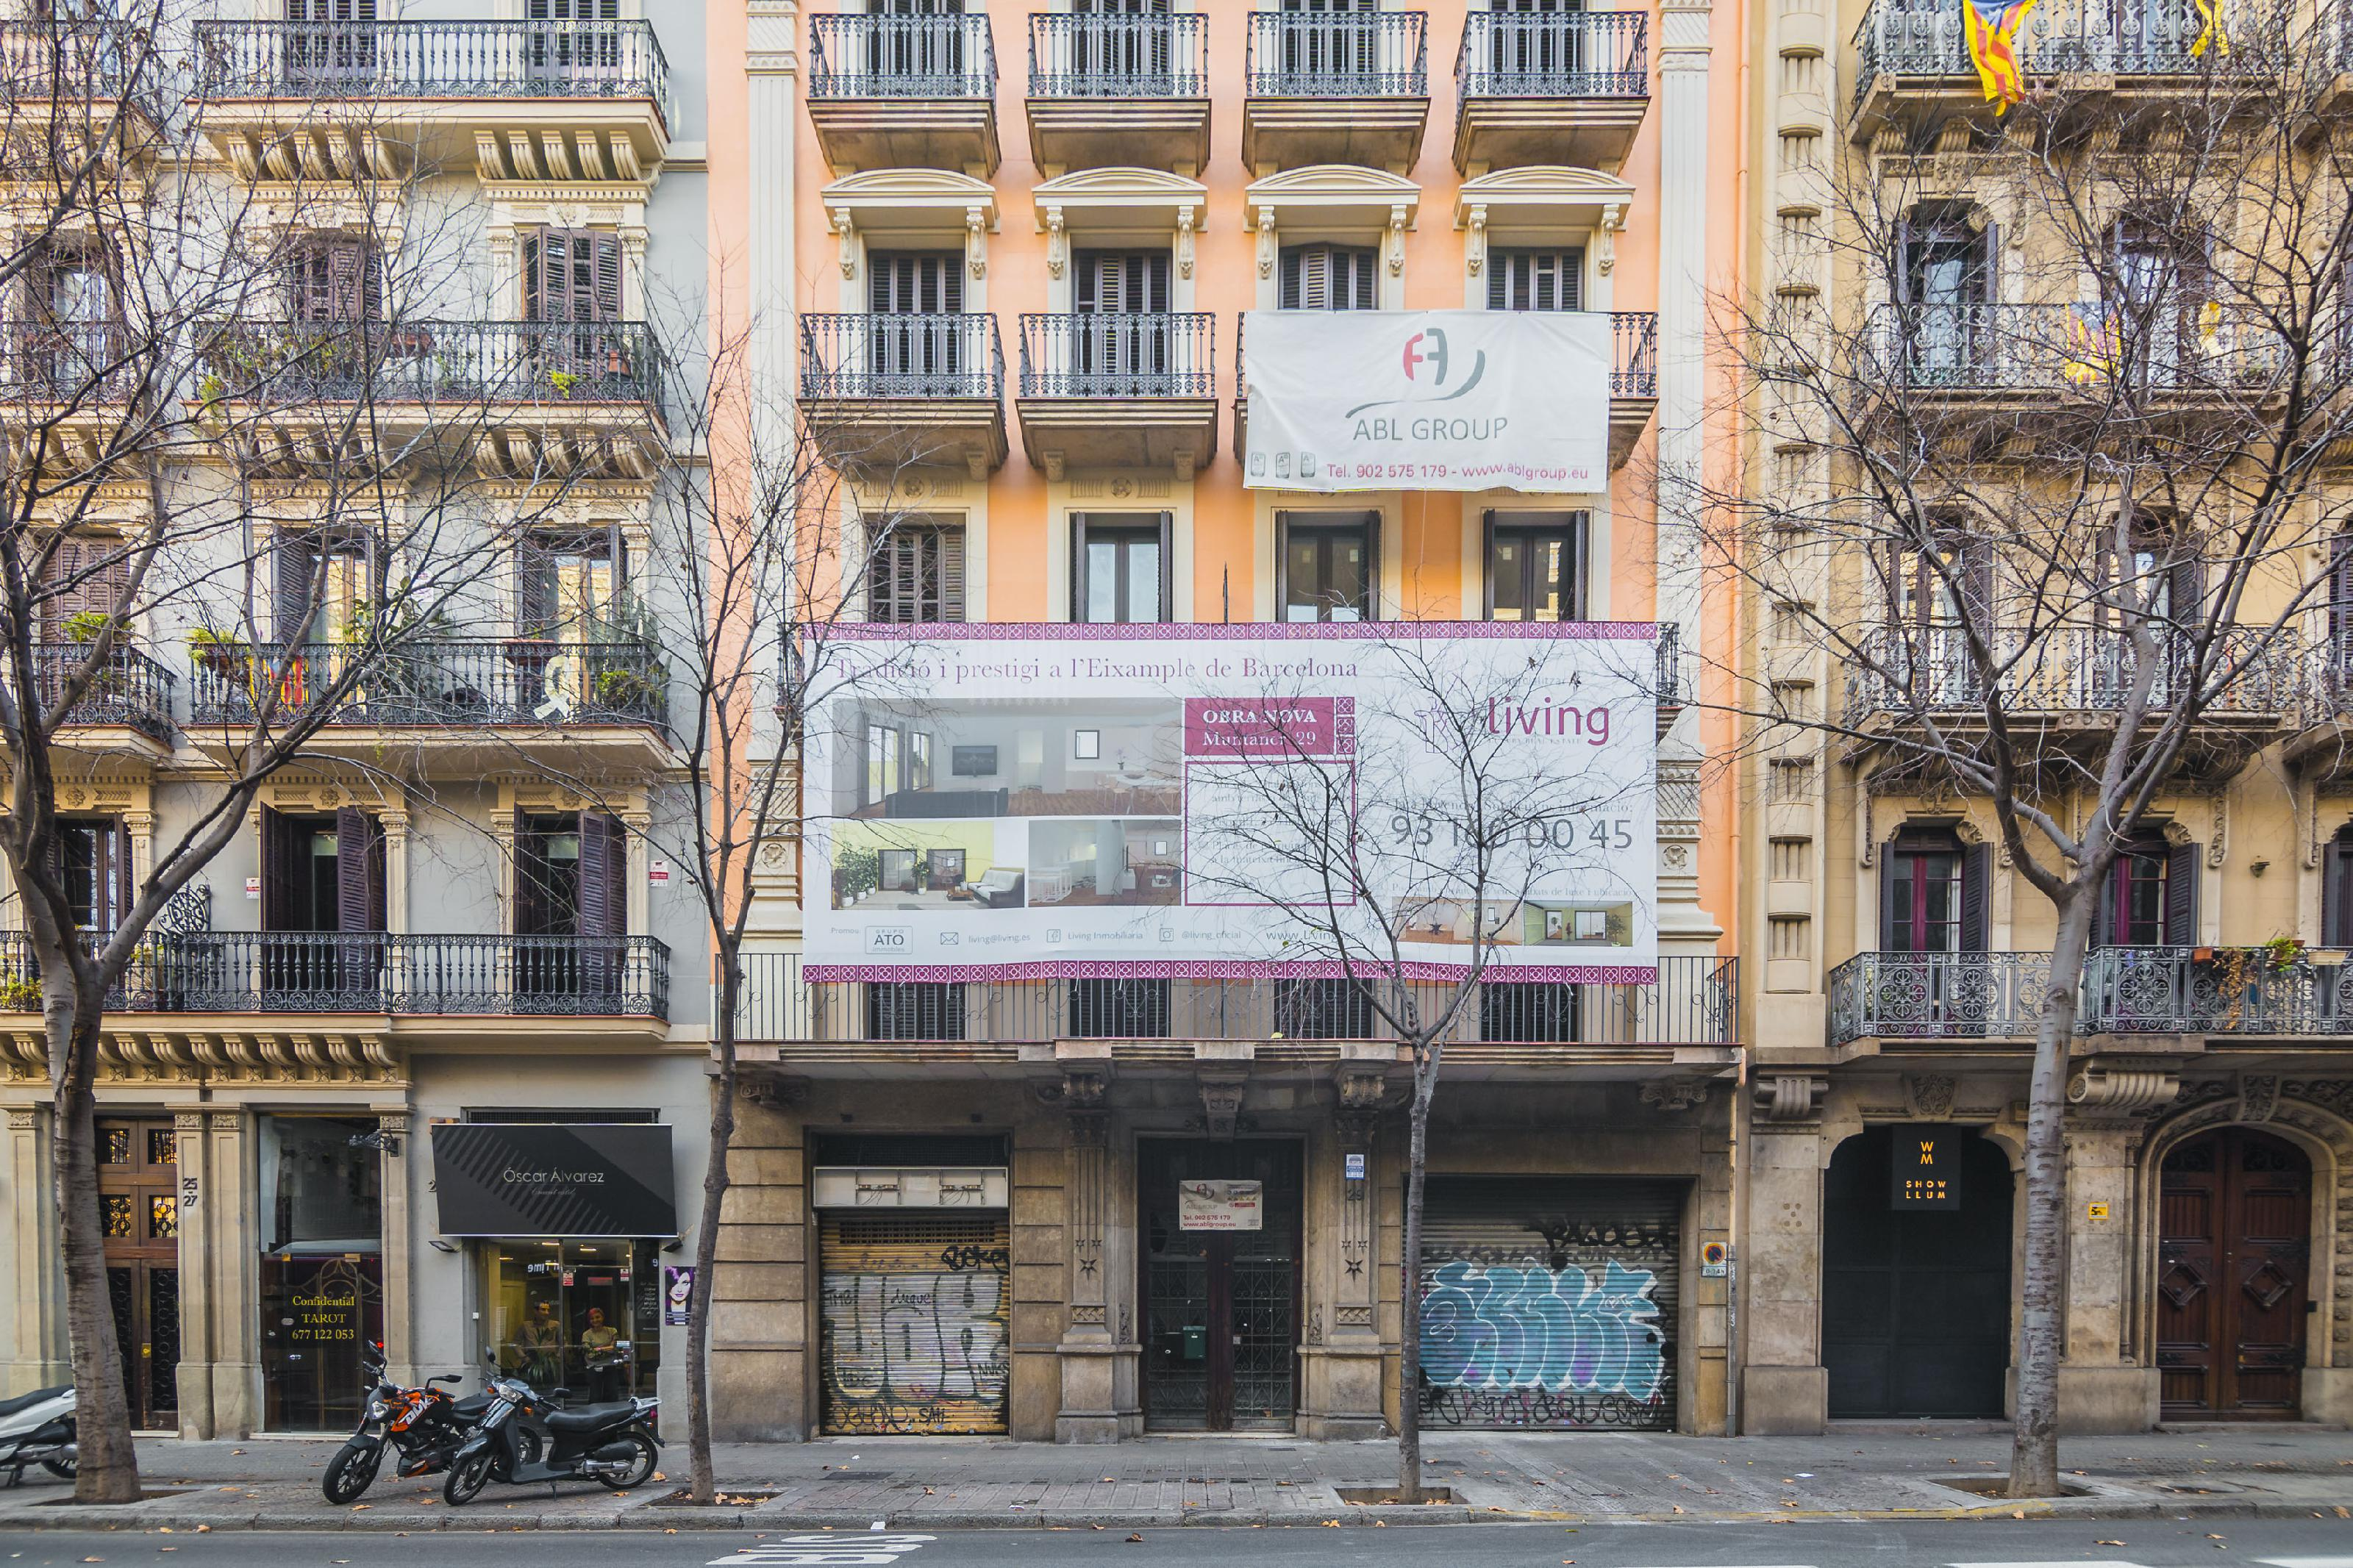 221579 Commercial Premises for sale in Eixample, Old Left Eixample 1